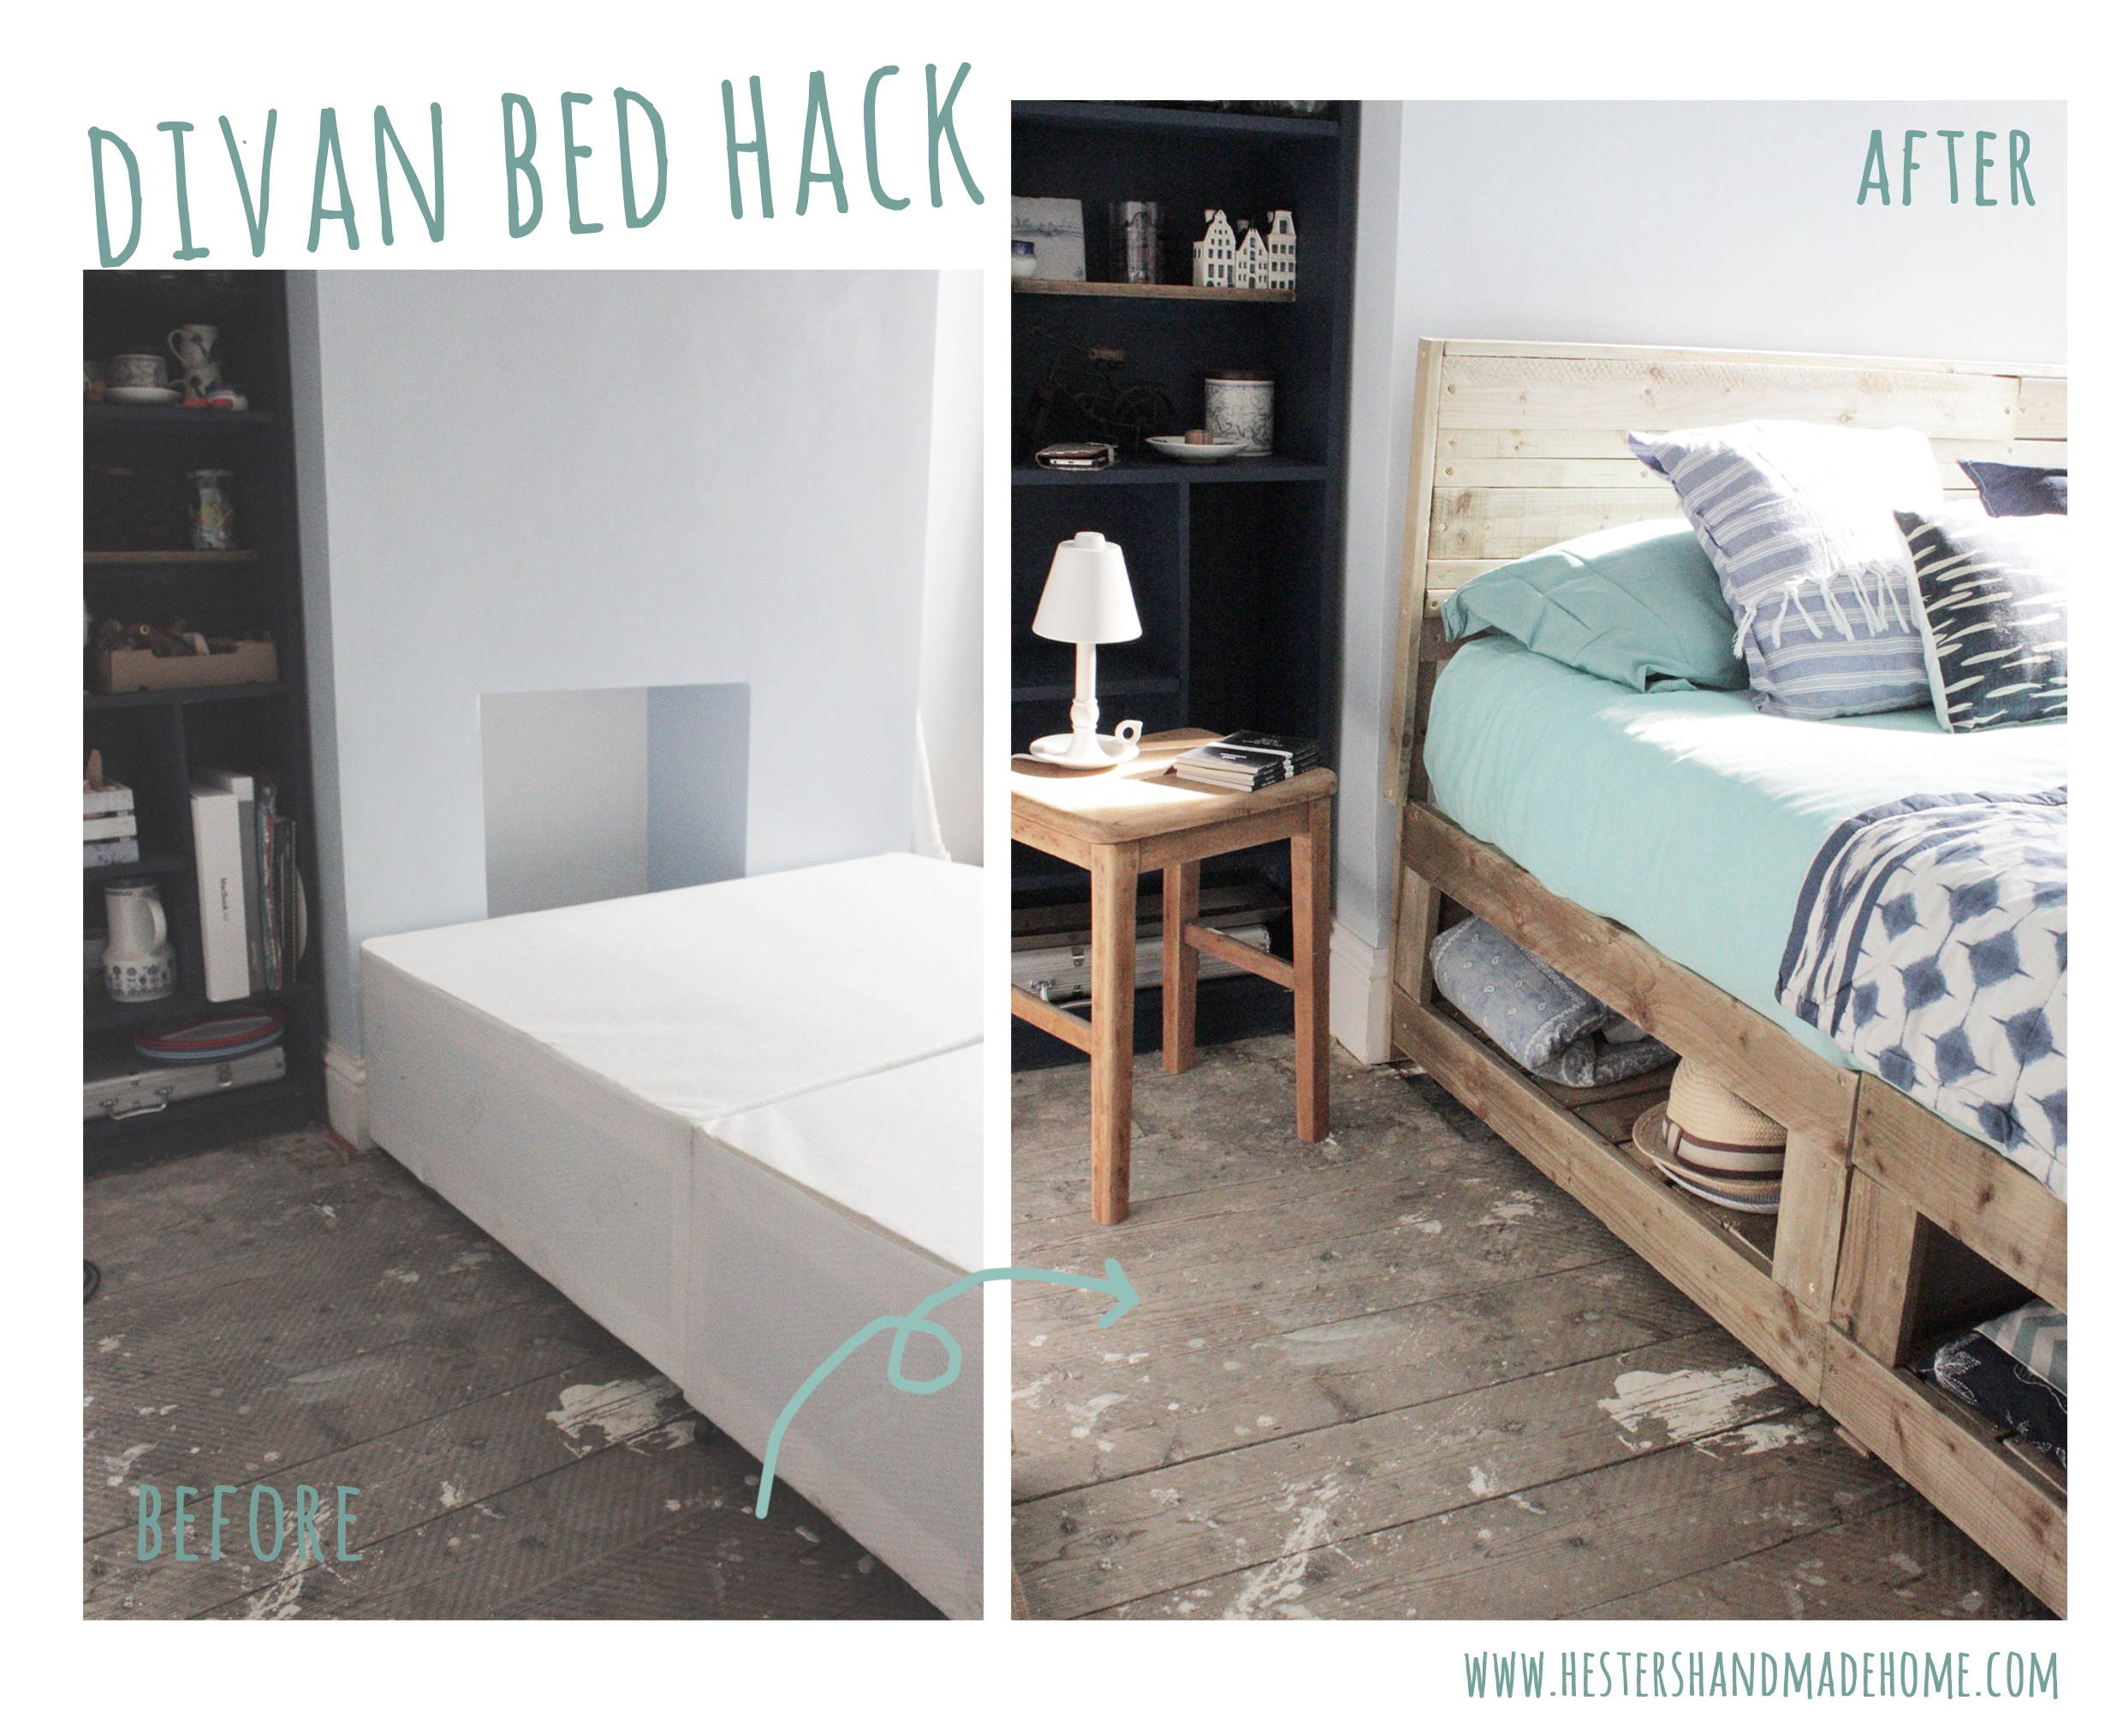 Divan Beds Cheap Divan Bed Hack Hester S Handmade Home